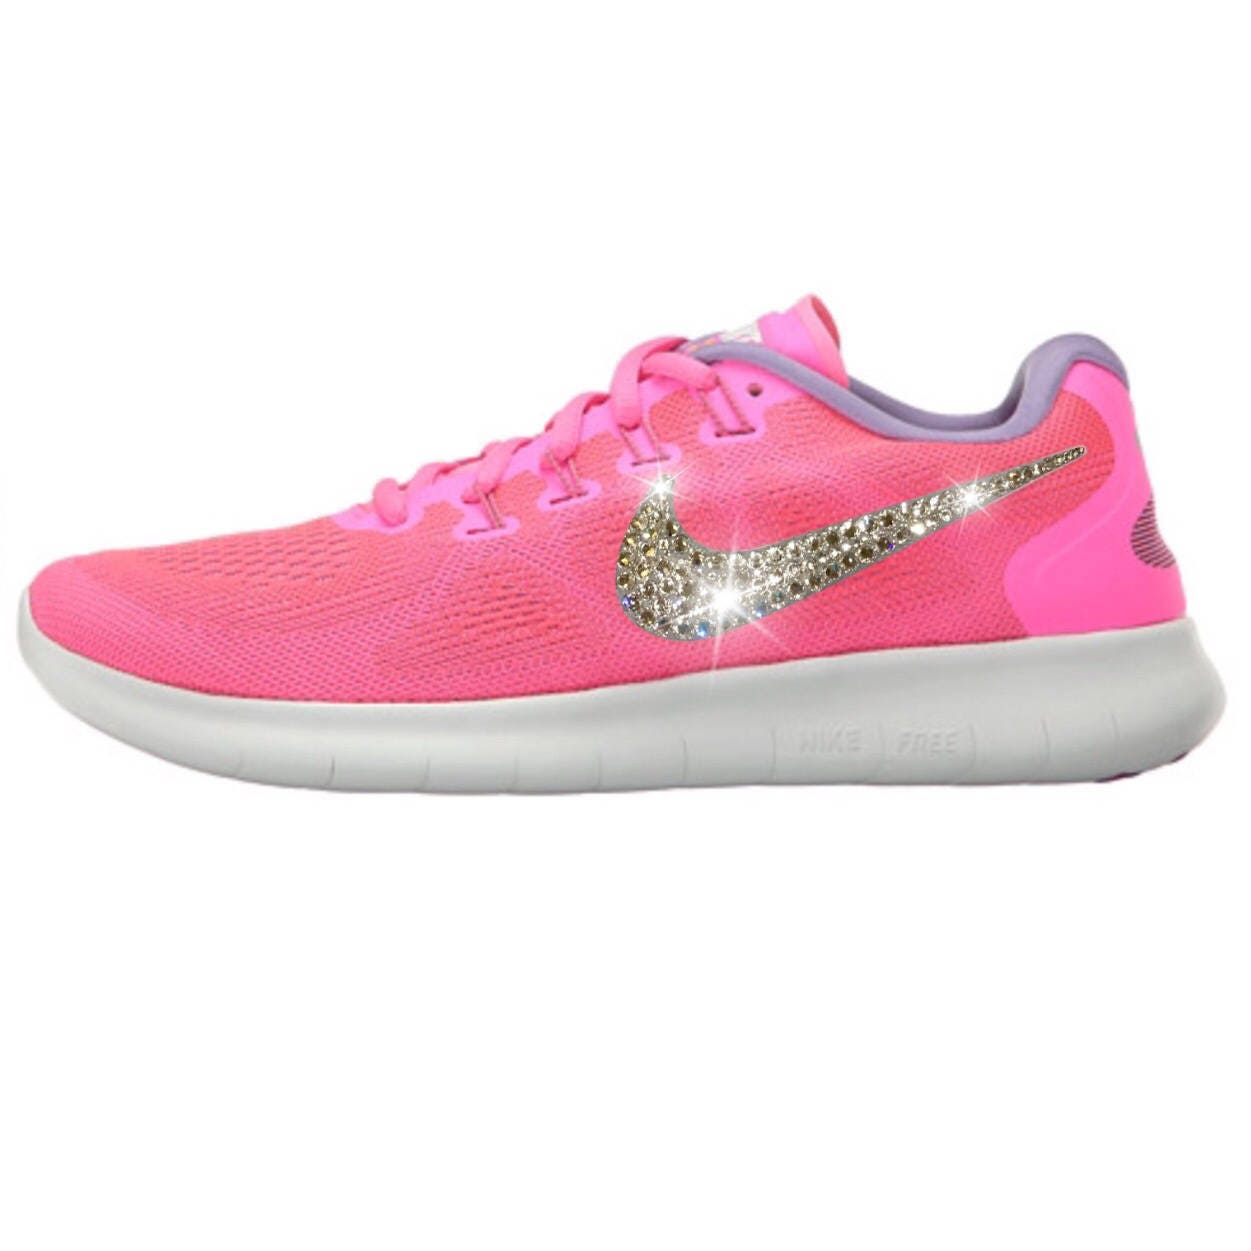 fef5f56fd272 NEW Bling Nike Free RN 2017 Shoes with Swarovski Crystals